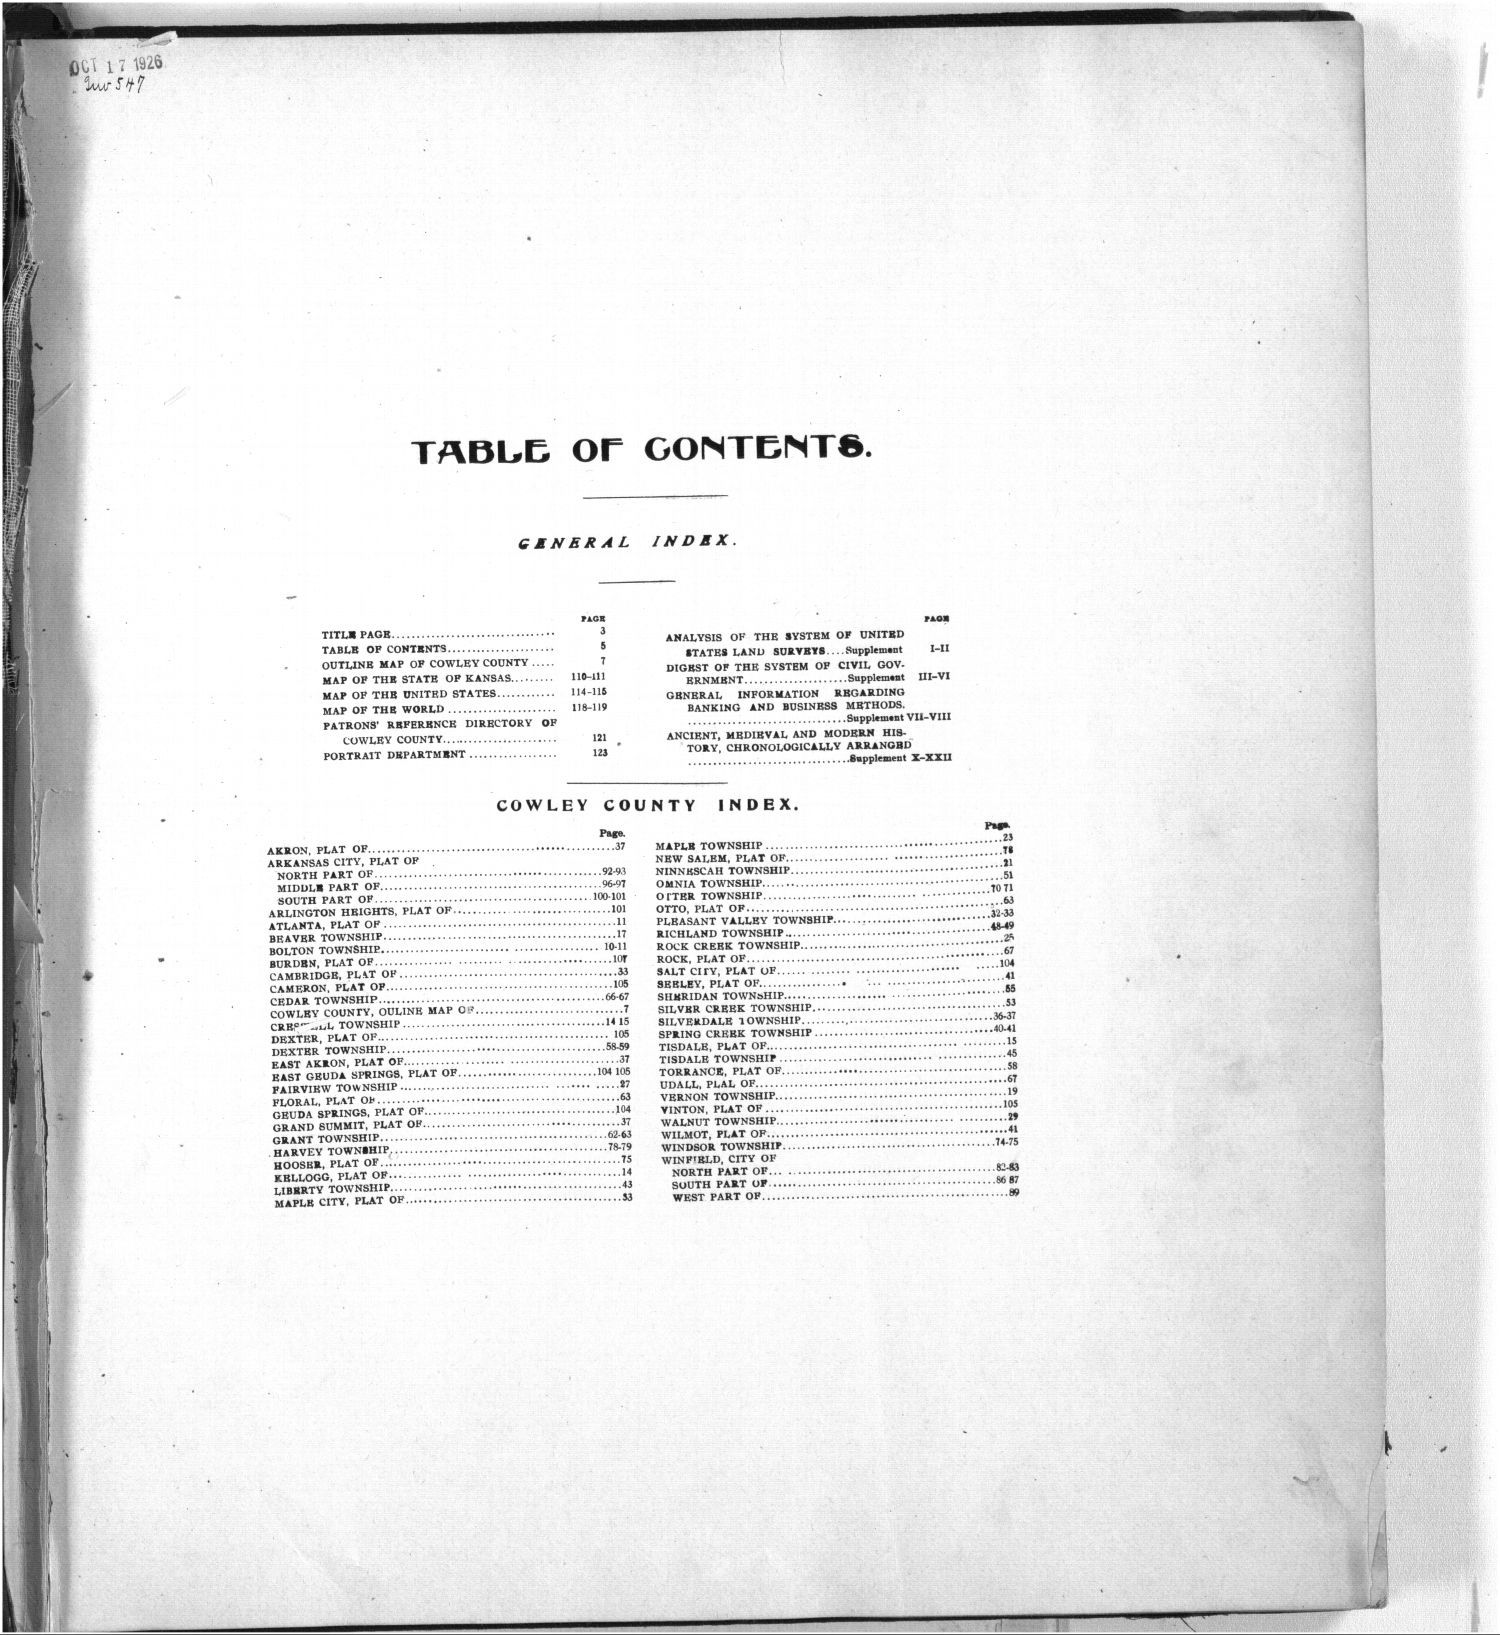 Standard atlas of Cowley County, Kansas - Table of Contents